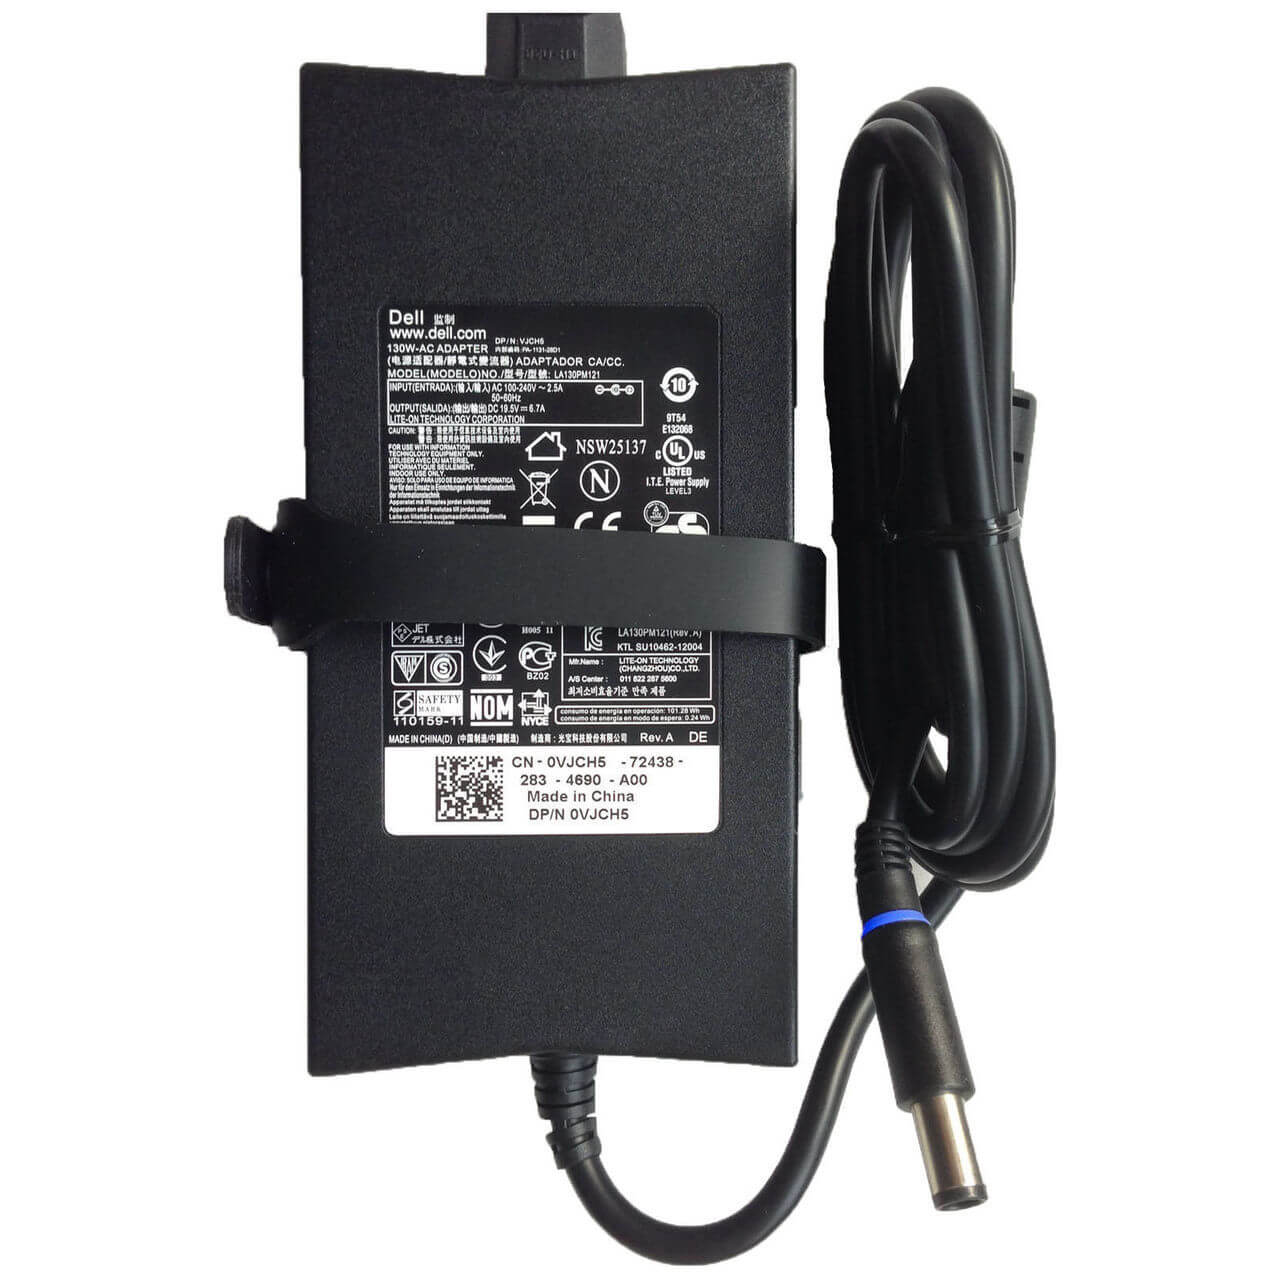 ZASILACZ DO LAPTOPA DELL 130W 19.5V 6.7A